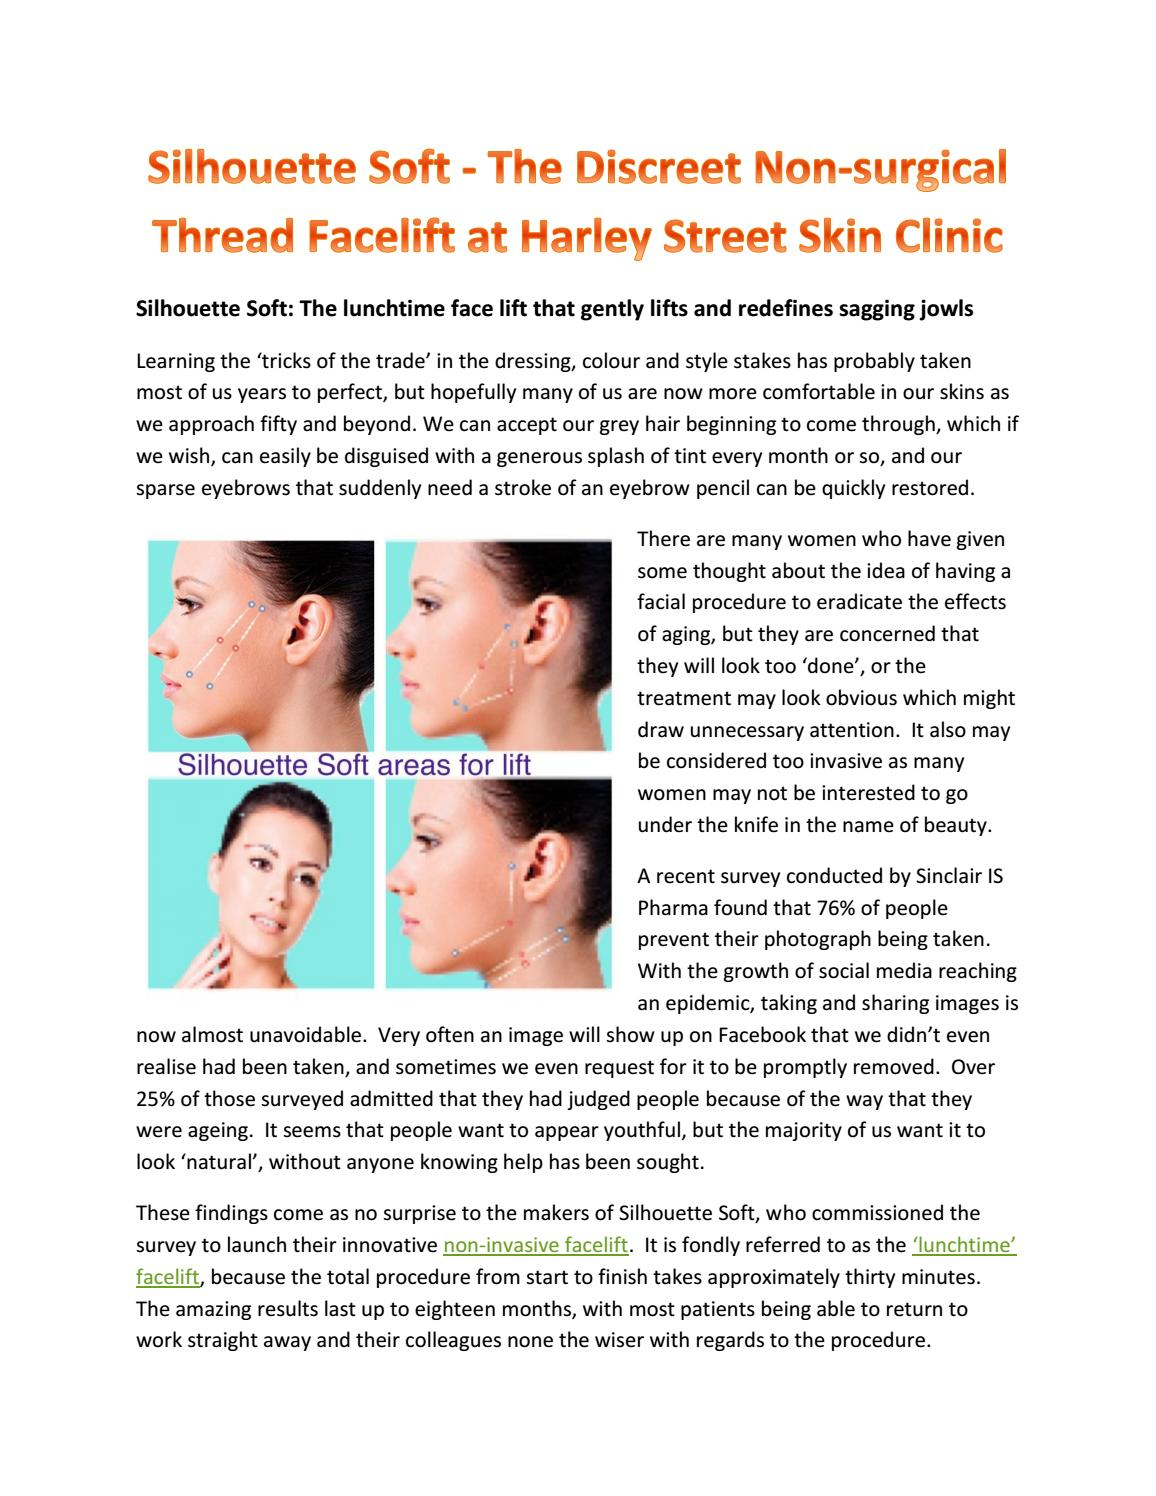 Silhouette soft the discreet non surgical thread facelift at